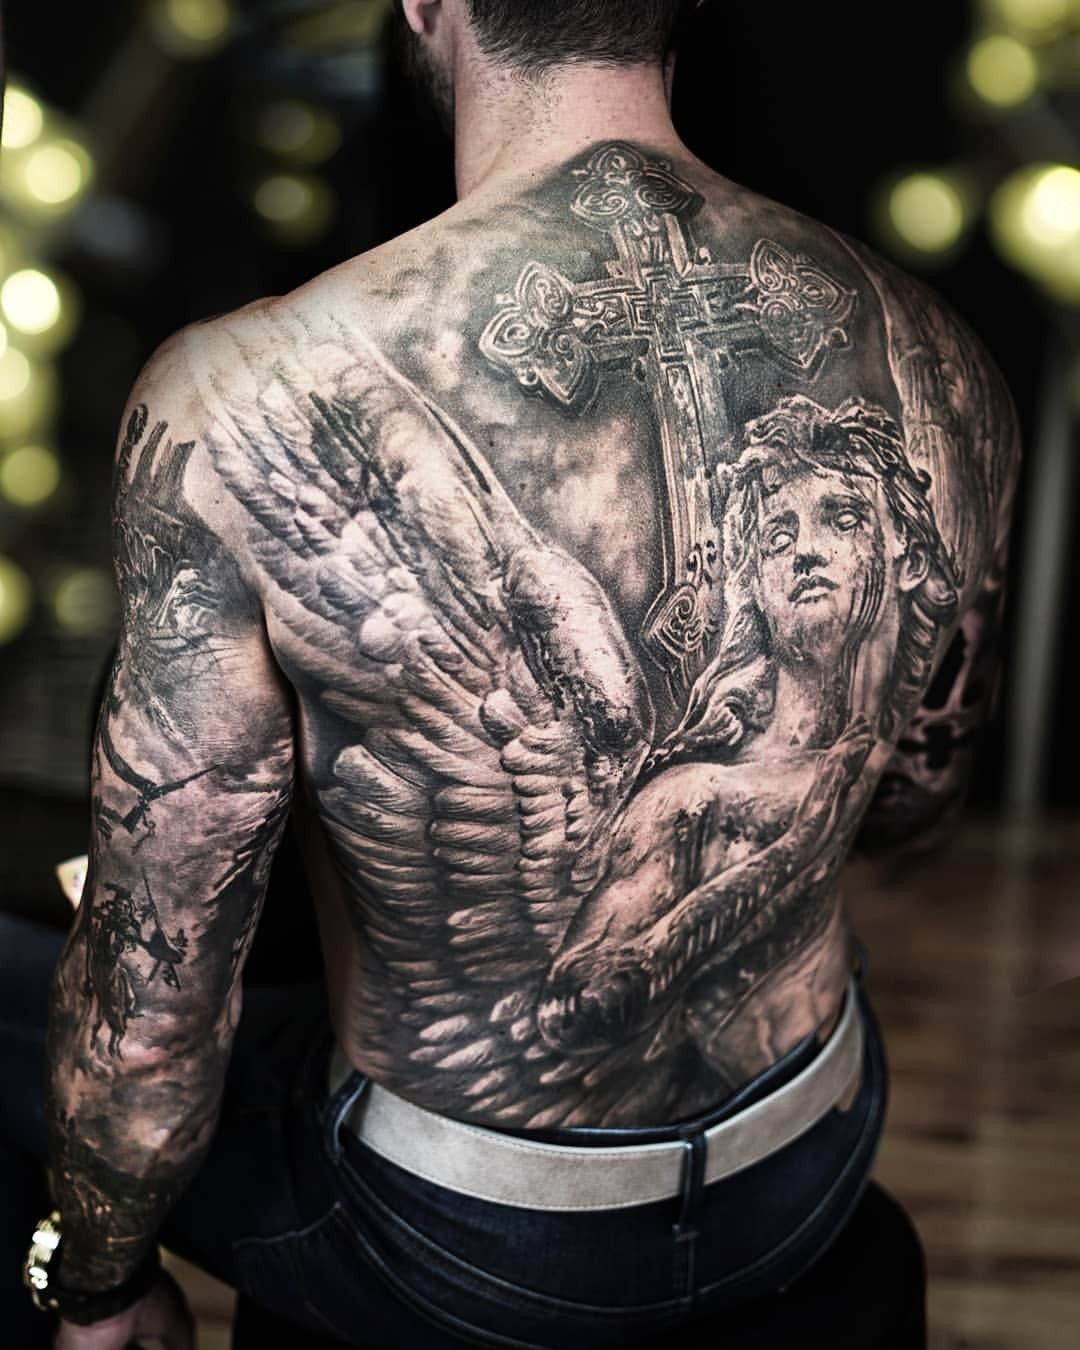 Mann tattoos Category:Men with